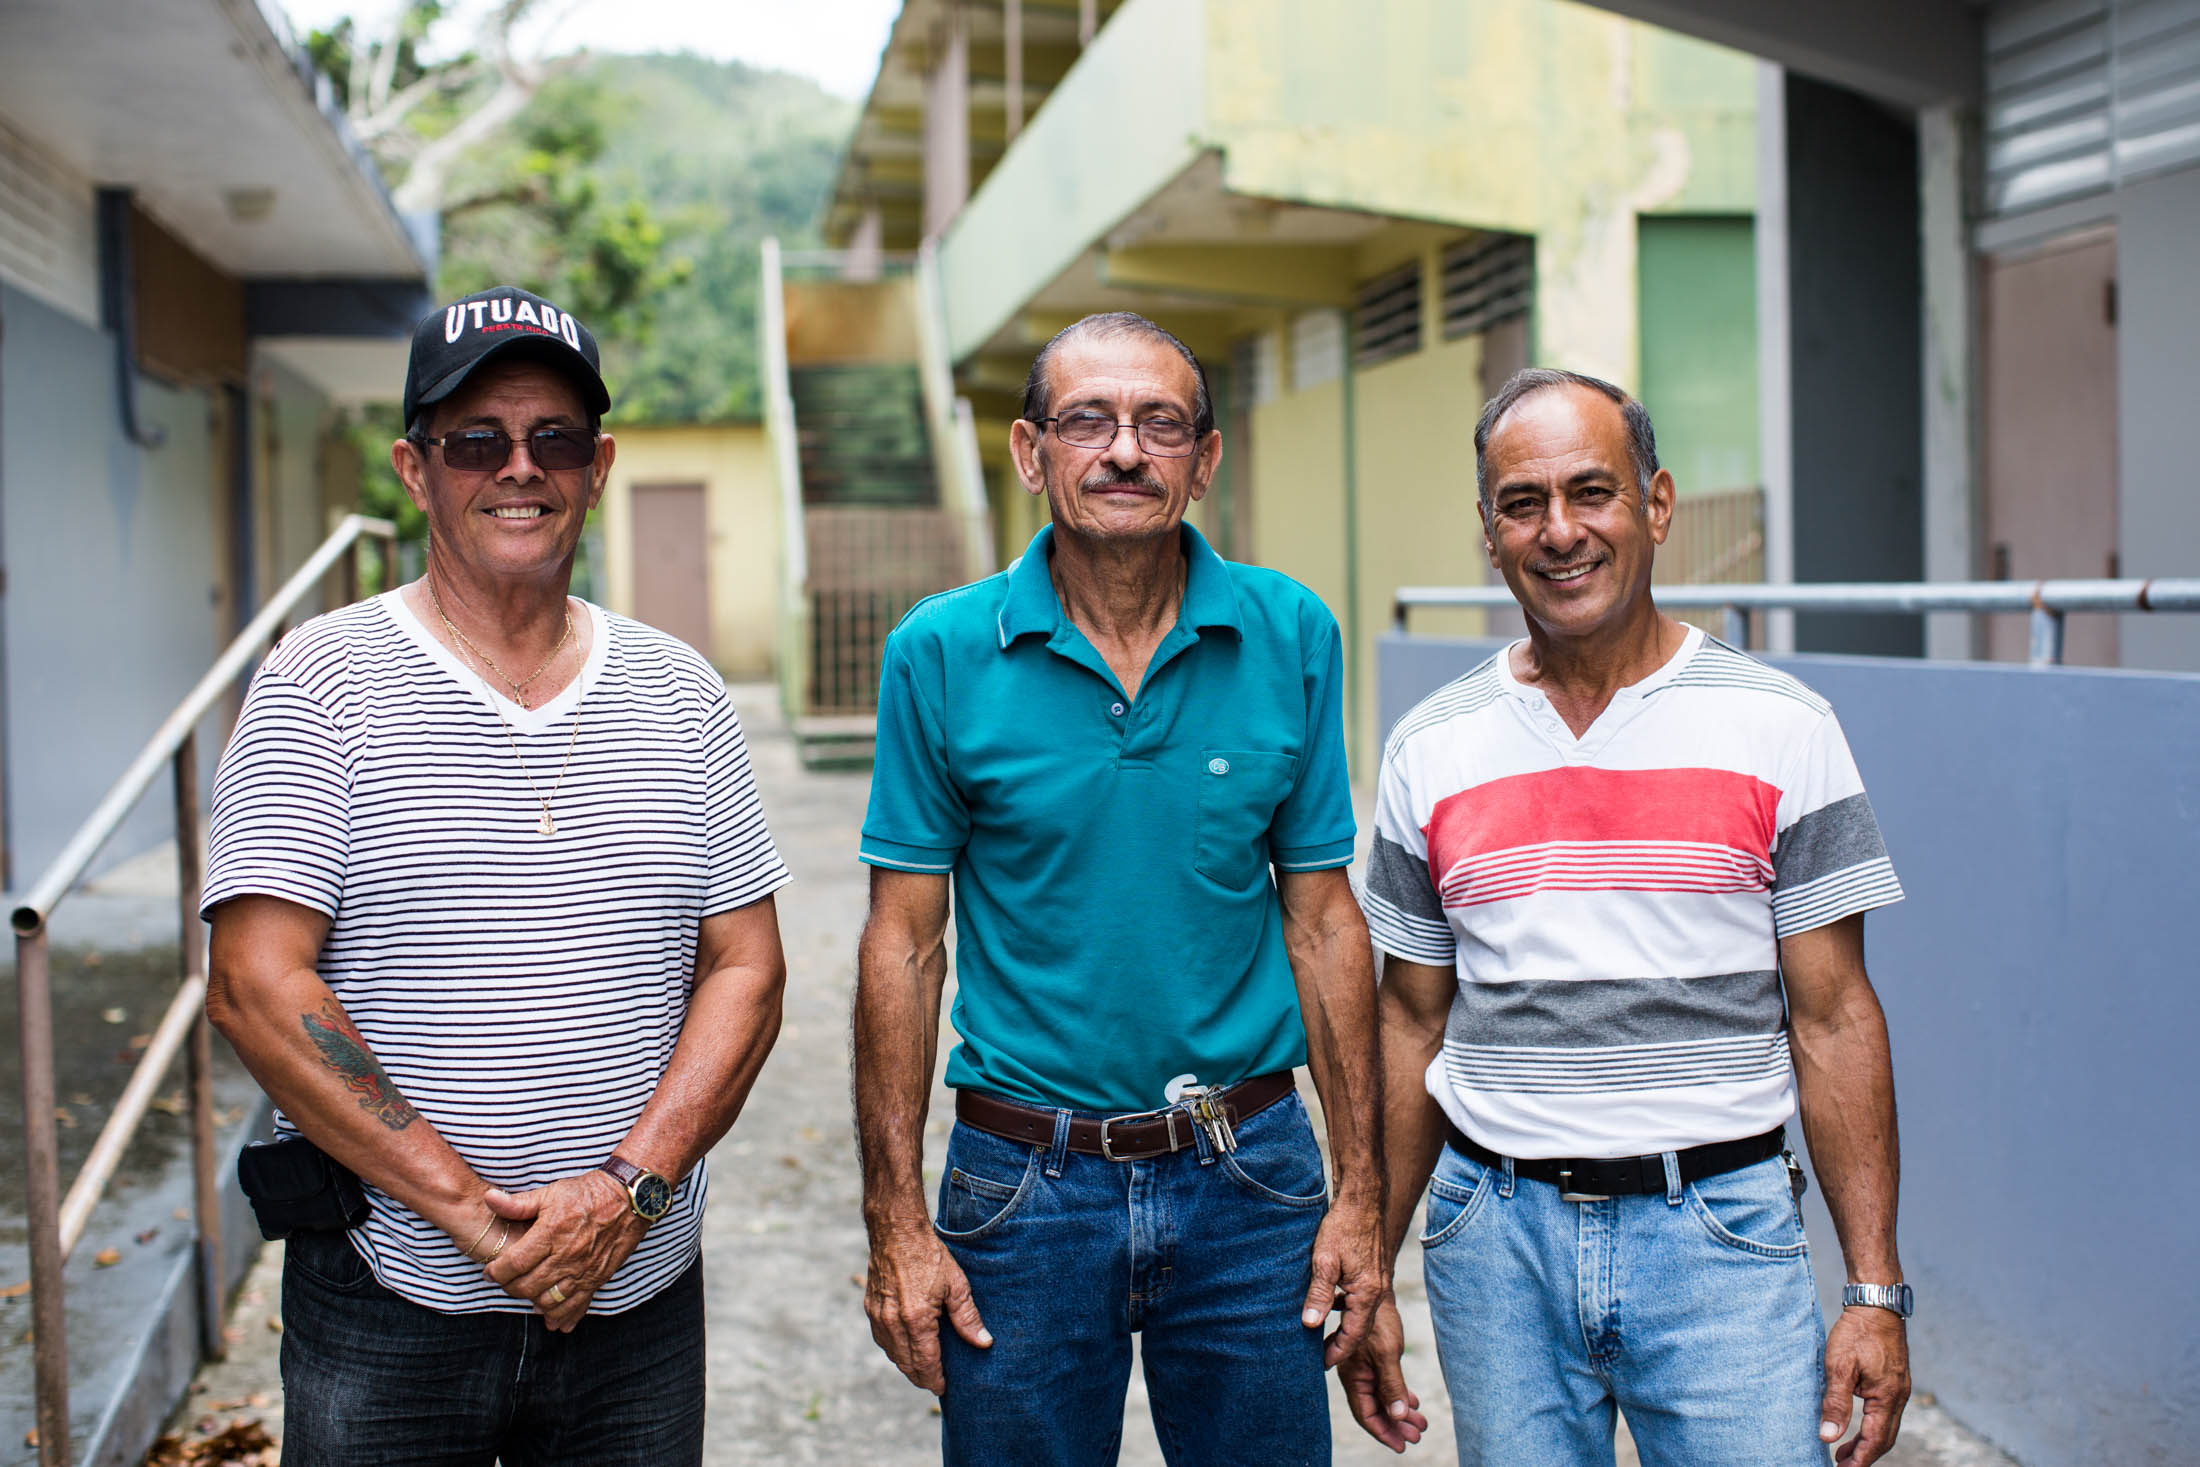 From left, William Reyes, Miguel Morales and Ivan Robles, of the community non-profit Acción Comunitaria del Viví, Inc., pose for a portrait at their home-base in Barrio Vivi Arriba, Utuado, P.R., on May 26, 2018. Inside the former public school, the group, funded by Direct Relief, opened a free laundry service for the two nearby communities who have been without power for over eight months. The entity, presided by Morales, serves as a community and aid center in the aftermath of hurricane Maria. Many of the residents of the mountainous area are elderly and underprivileged. (Erika P. Rodríguez for Direct Relief)